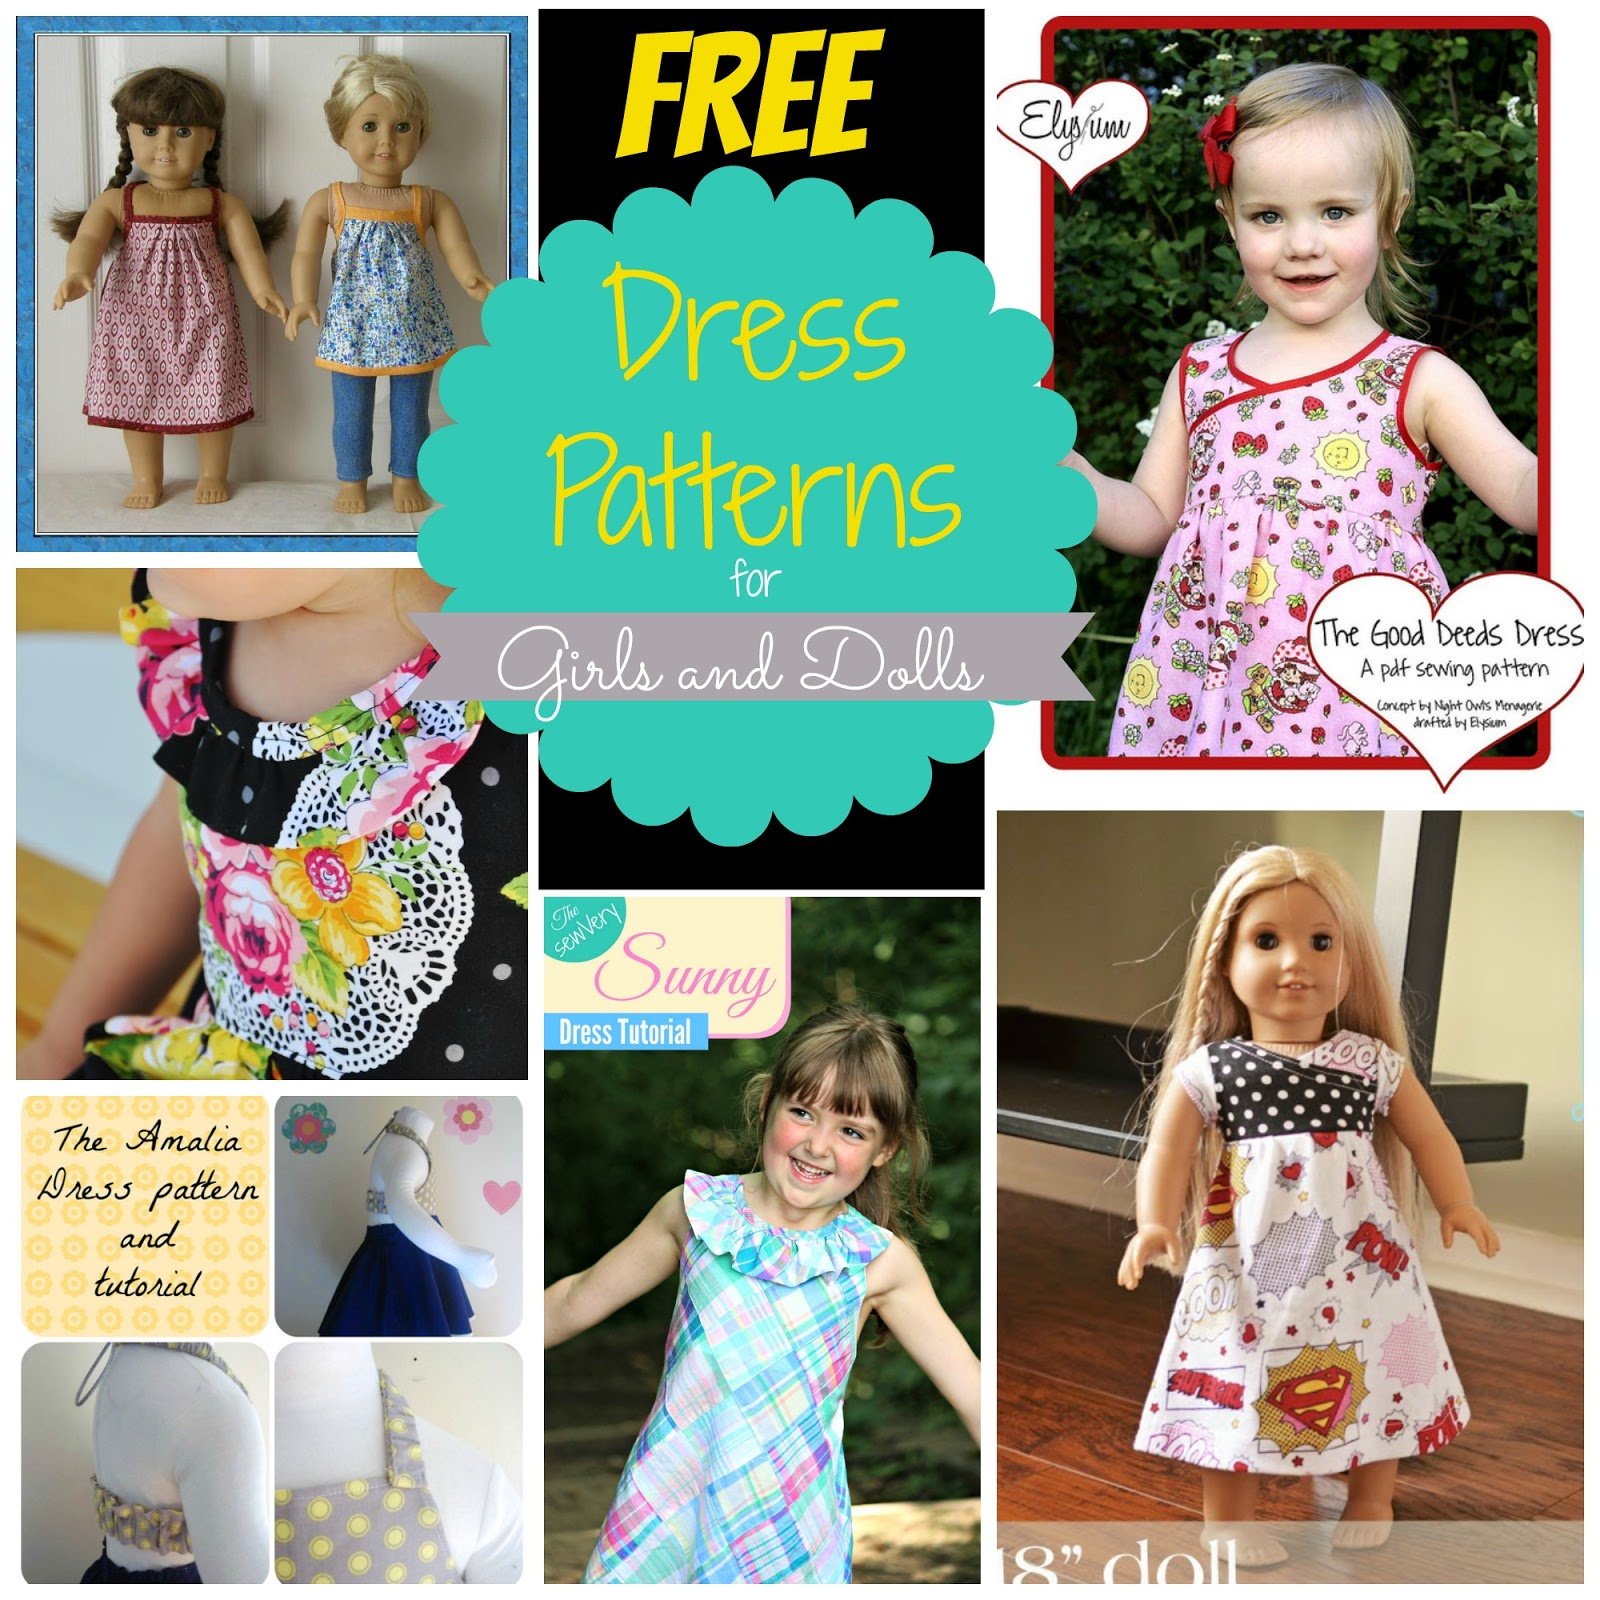 FREE Dress Patterns found on Craftsy for Girls and Dolls